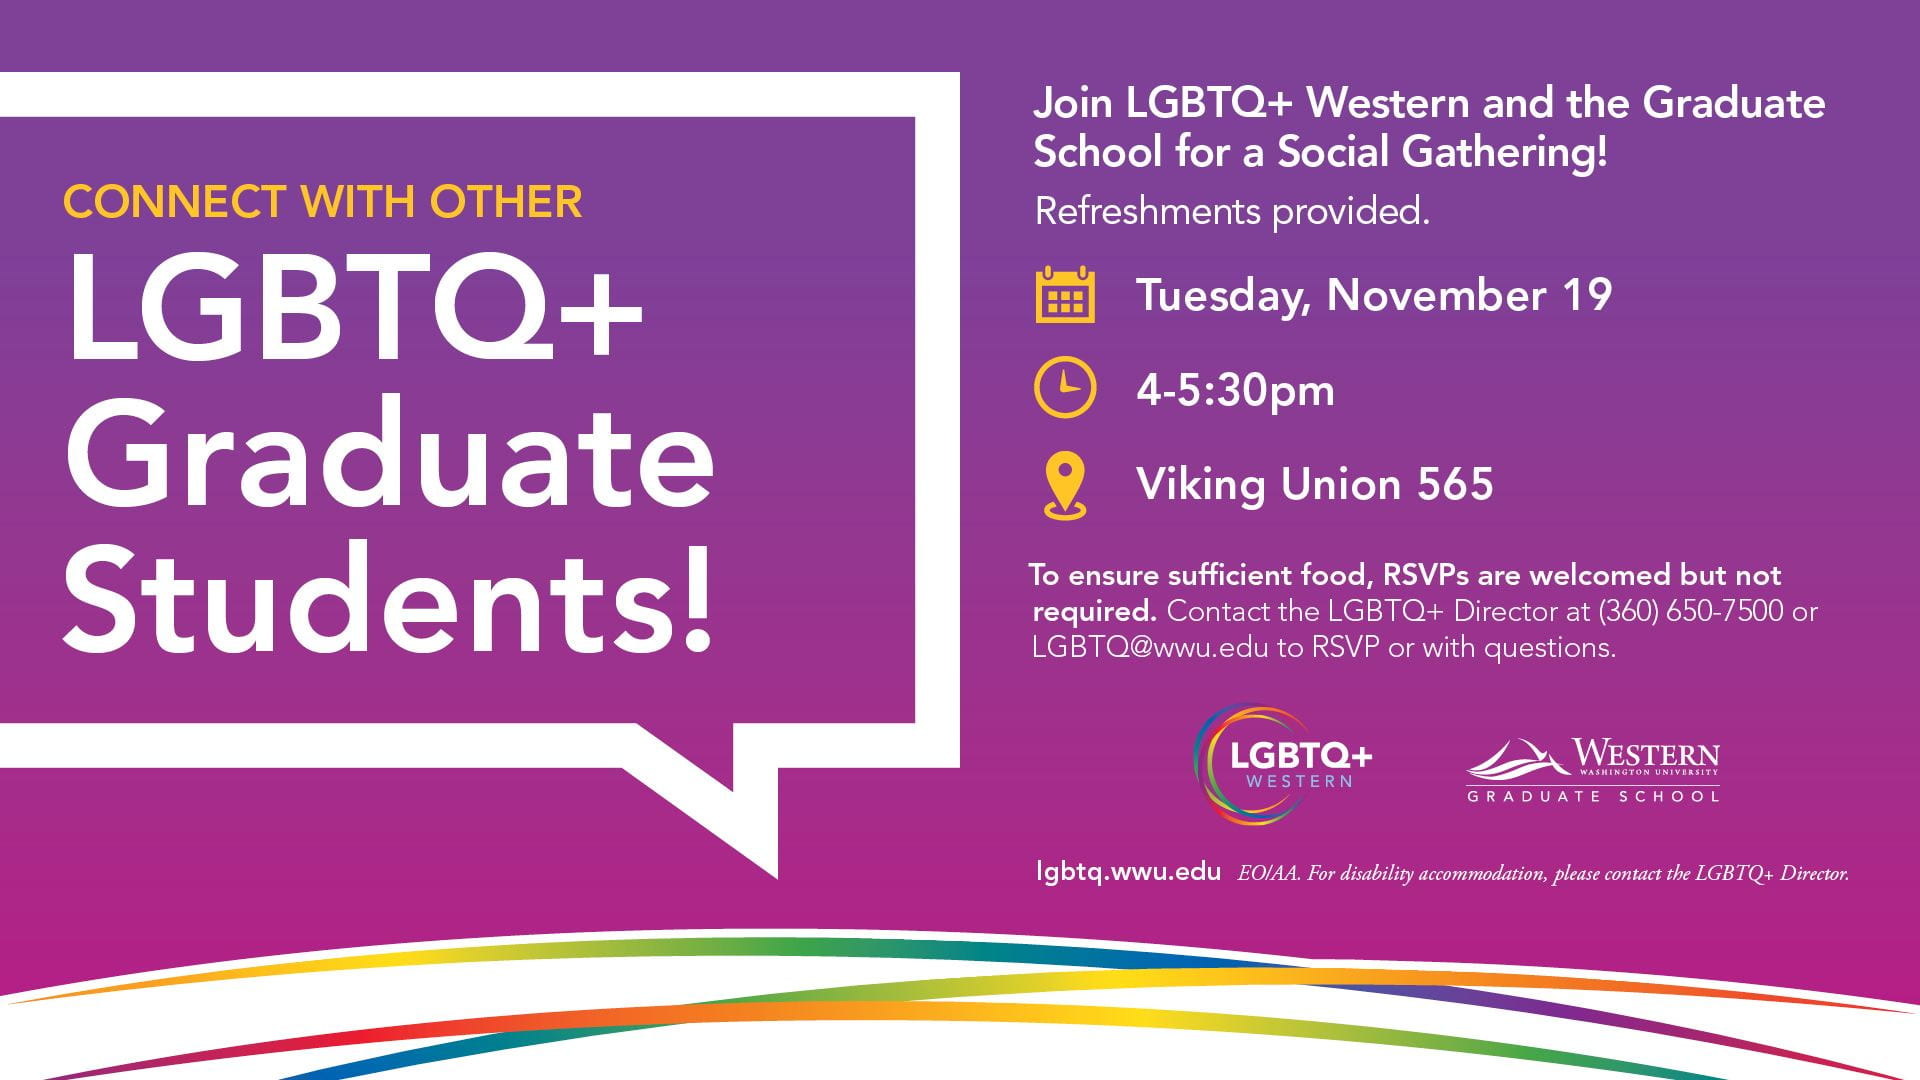 Connect with other LGBTQ+ Graduate Students! banner image